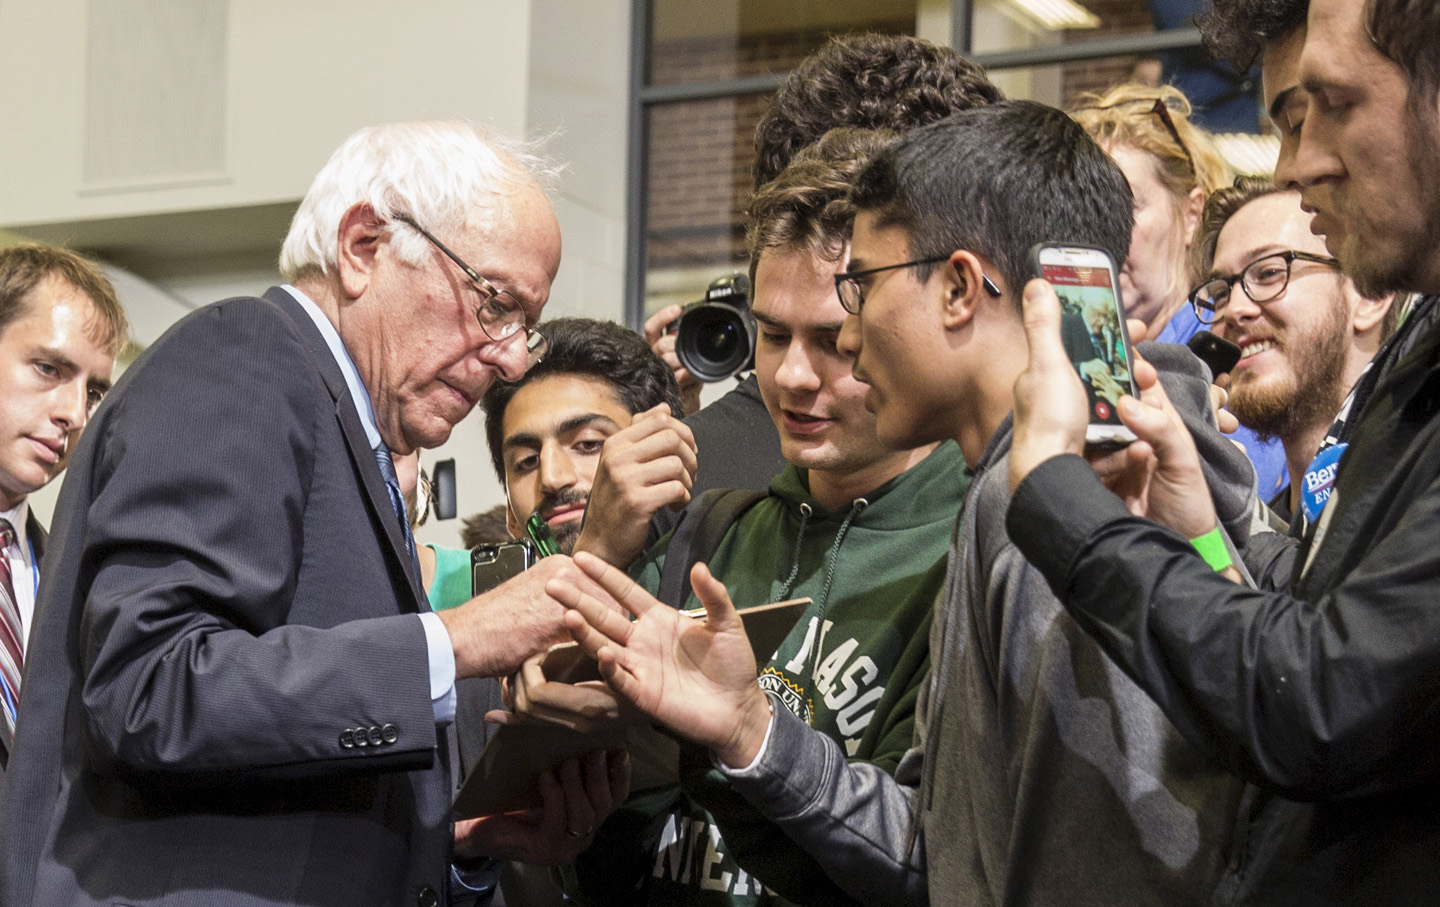 Democratic presidential candidate Sanders greets students after a town hall meeting with students at George Mason University in Fairfax